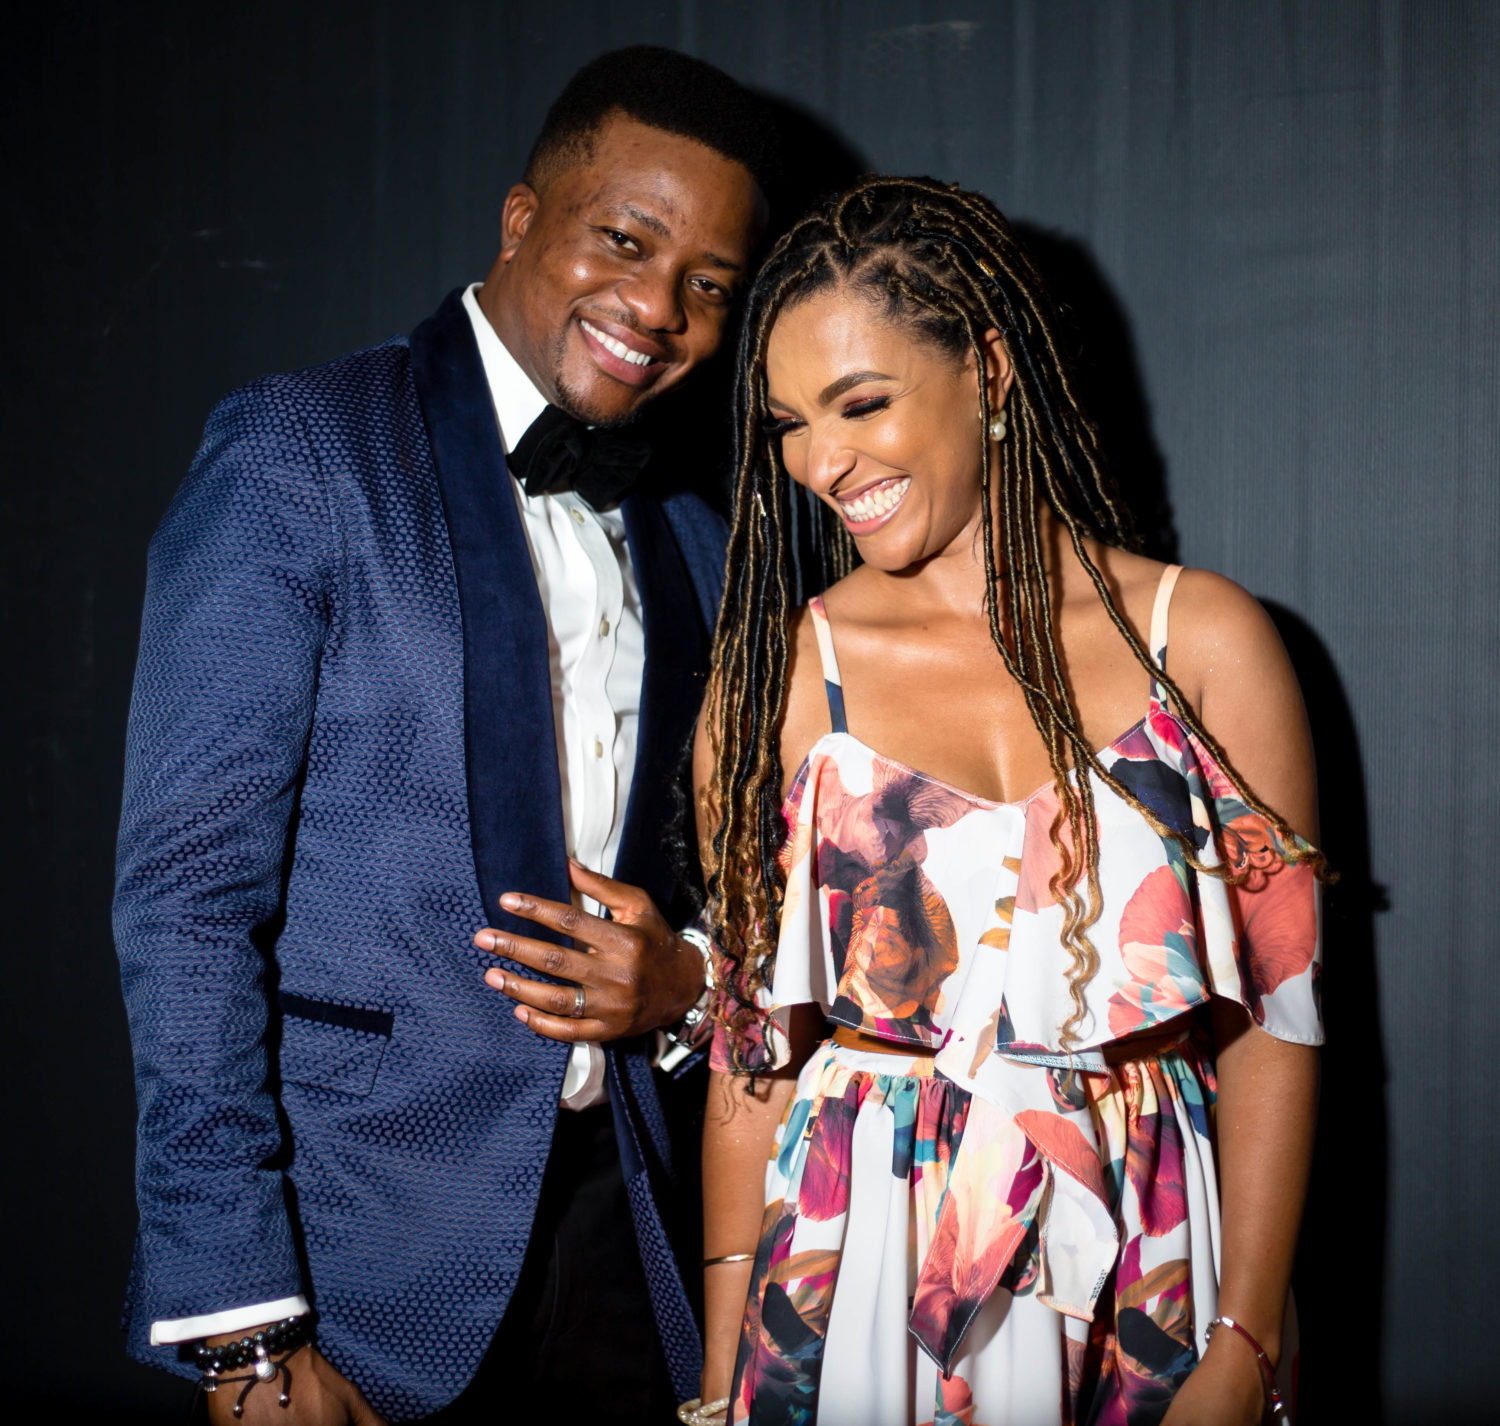 Surprise: These Are the Cute AMVCA Moments You Probably Missed